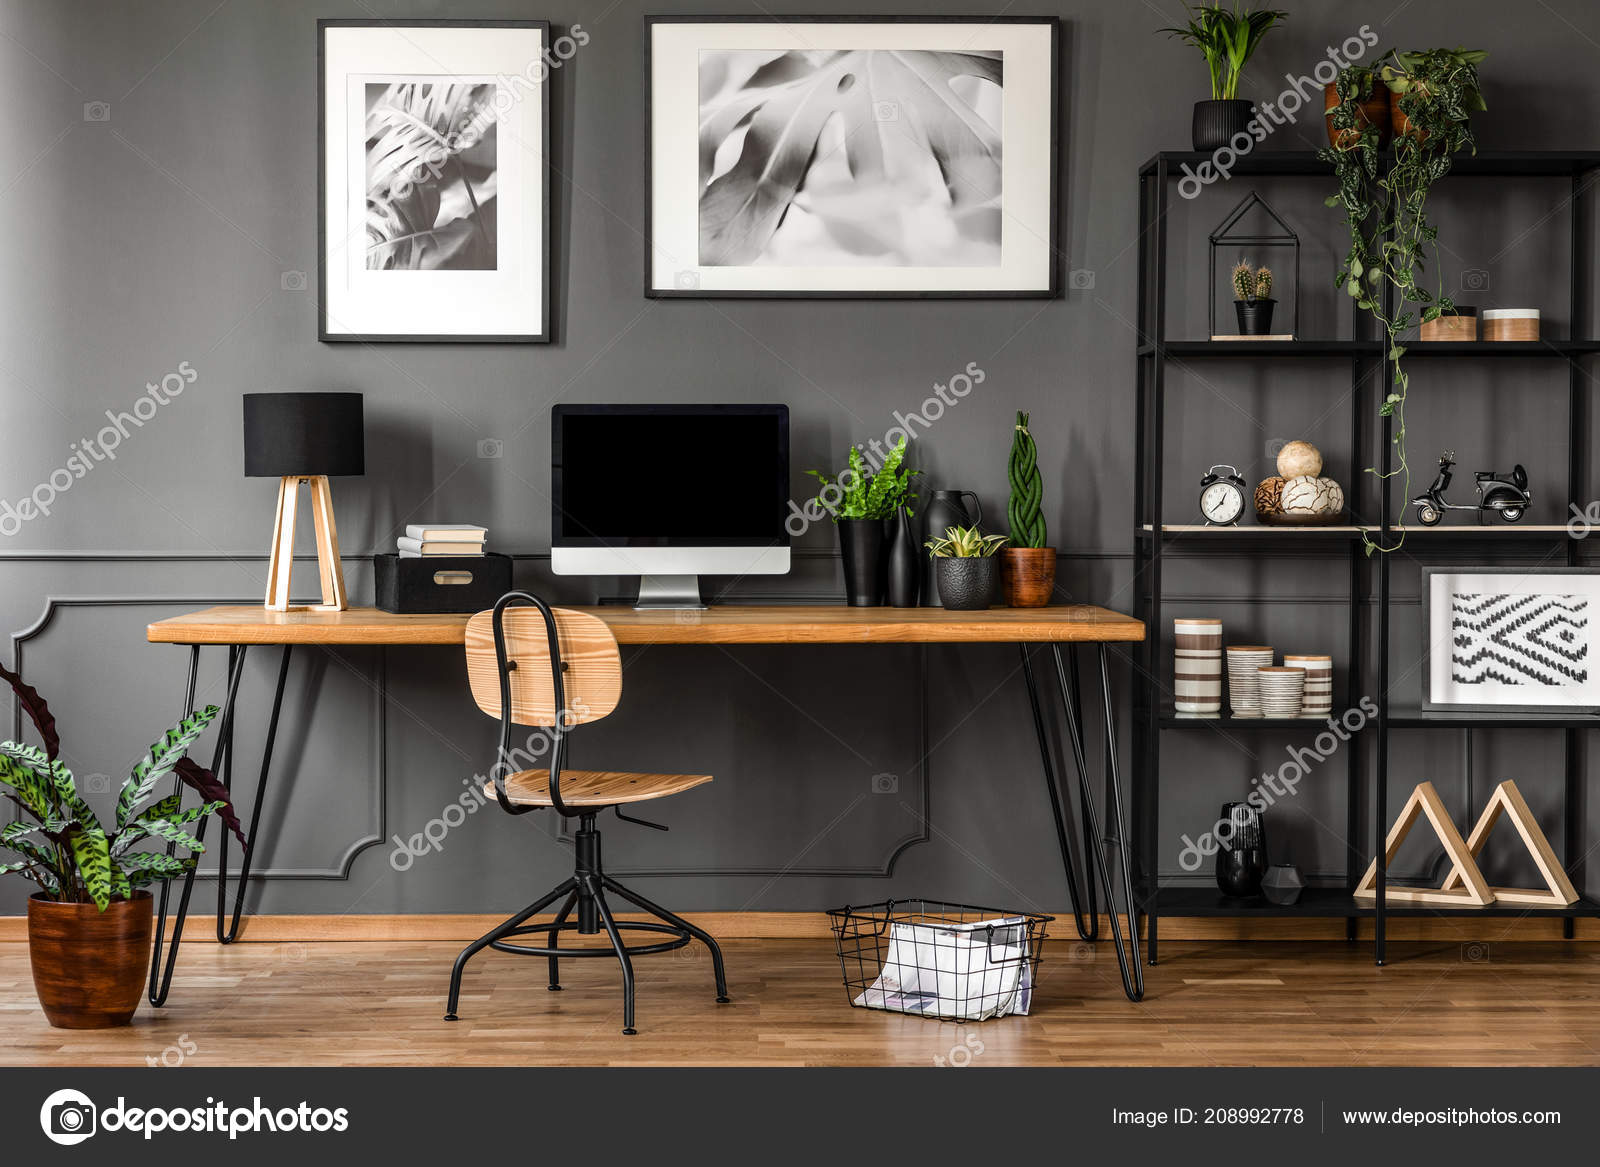 Posters on grey wall above wooden desk in natural home office interior with  plants and lamp 35